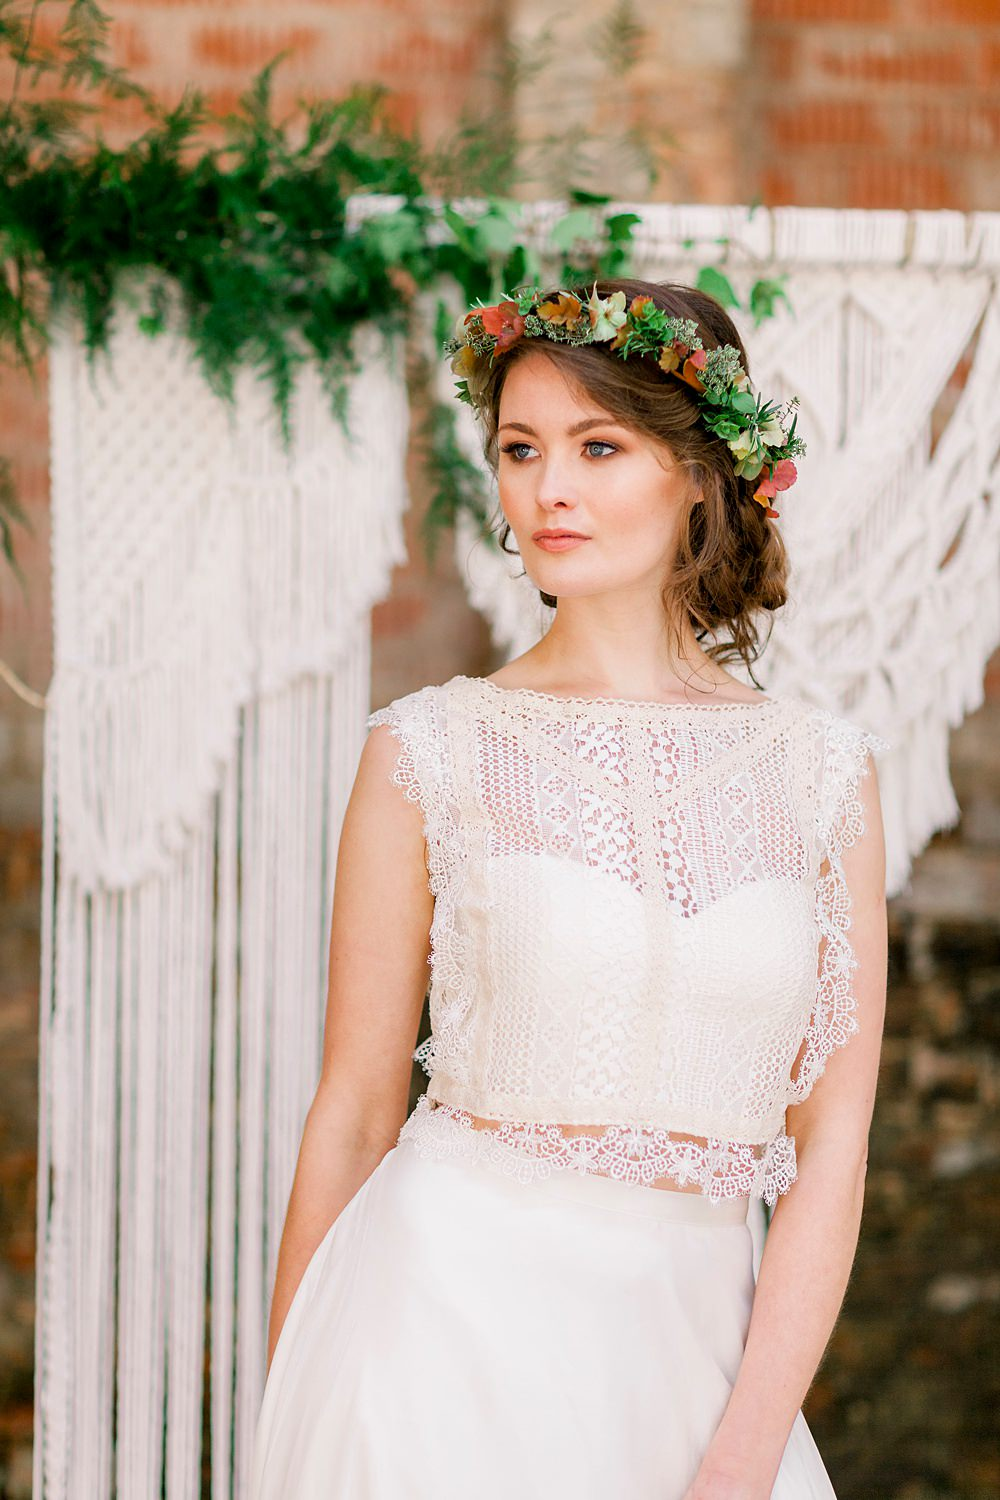 Flower Crown Bride Bridal Make Up Dress Gown Bride Bridal Stelfox Bride Lace Top Skirt Natural Boho Industrial Wedding Ideas Jo Bradbury Photography